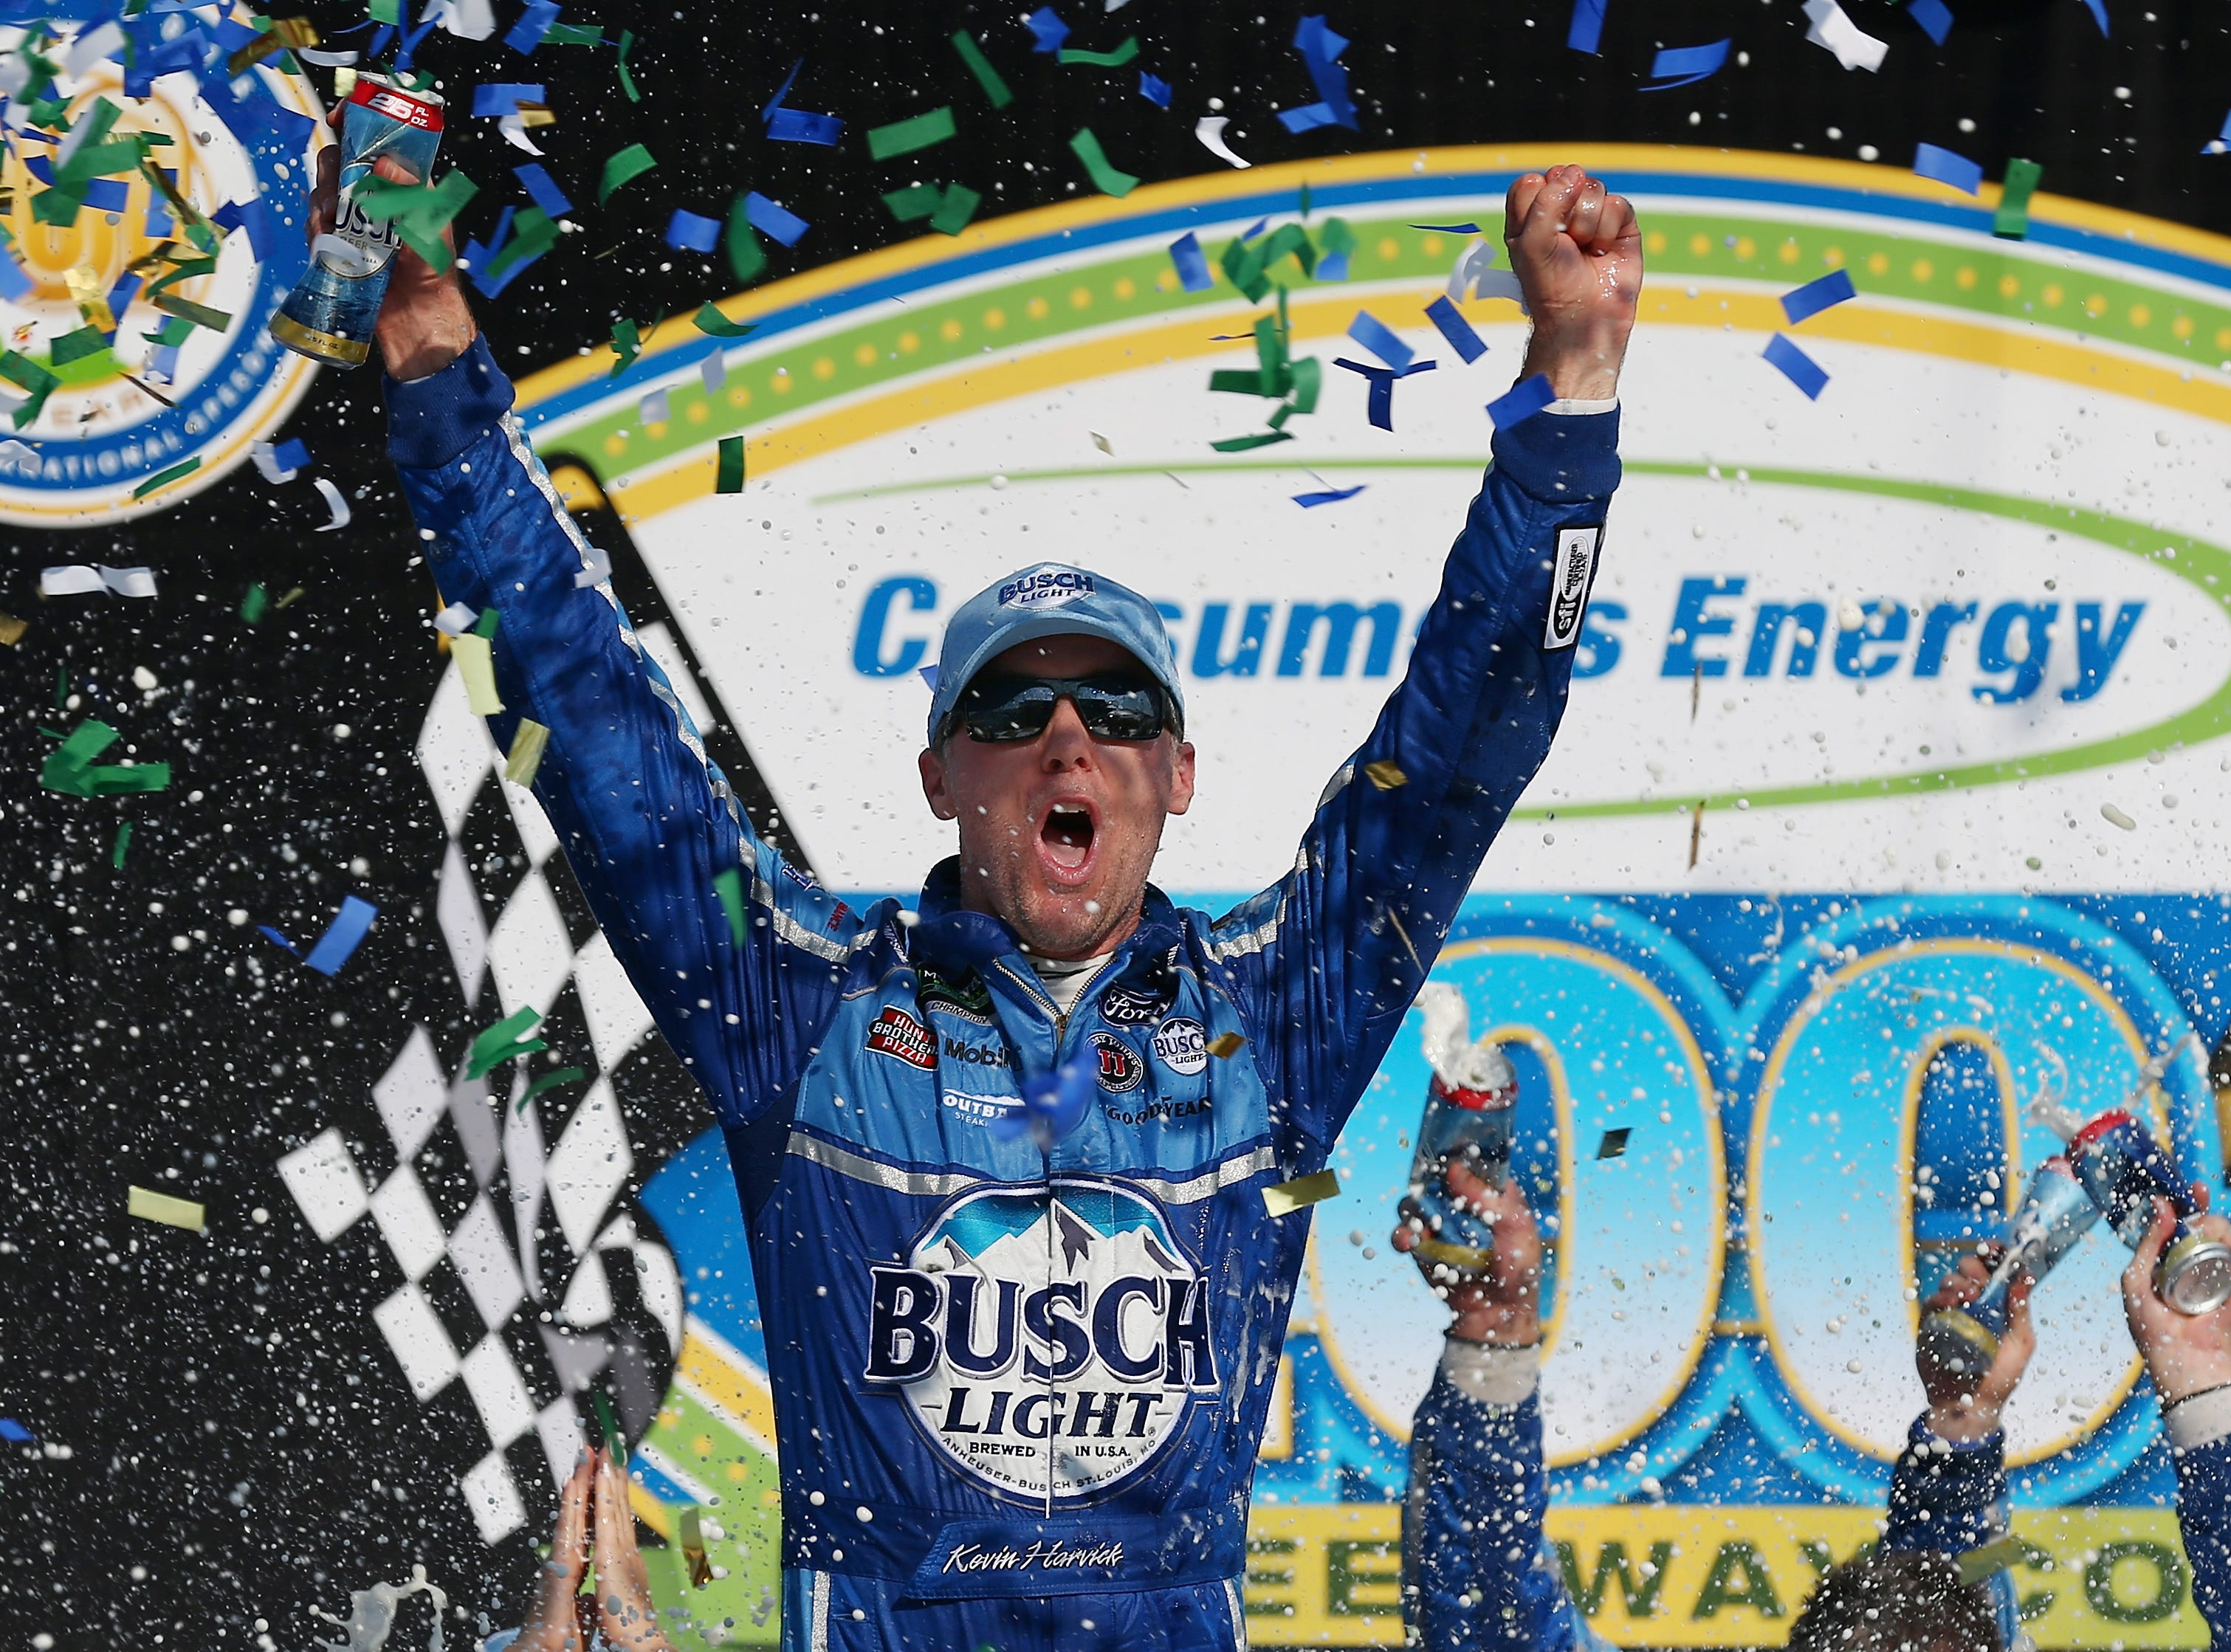 Kevin Harvick, driver of the No. 4 Busch Light/Mobil 1 Ford, celebrates in Victory Lane after winning the Monster Energy NASCAR Cup Series Consumers Energy 400 at Michigan International Speedway on August 12, 2018 in Brooklyn, Michigan.